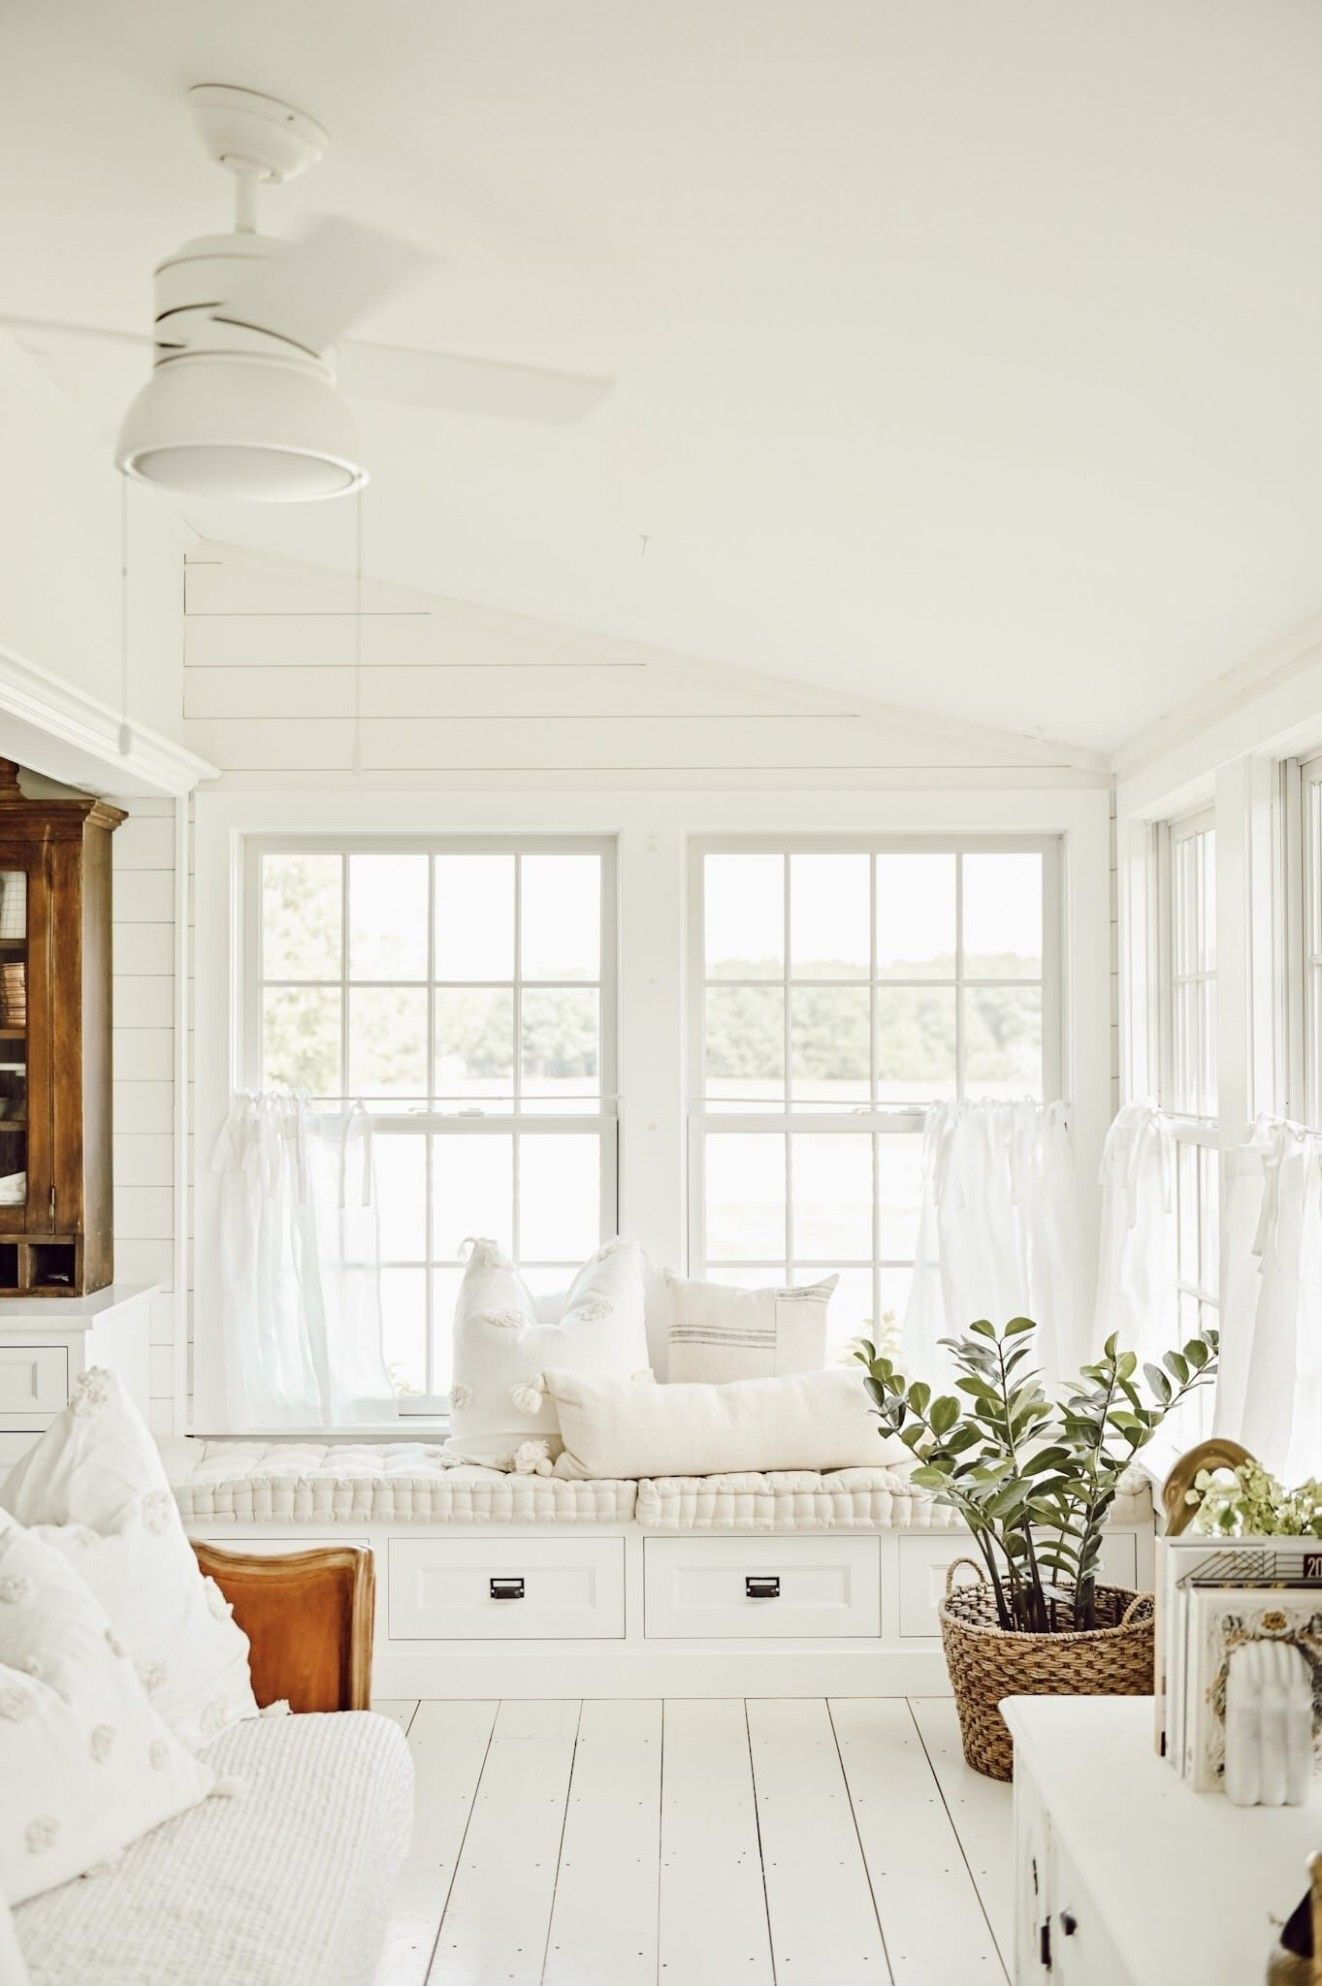 11 Best Sunroom Ideas - Gorgeous Sunroom Designs and Pictures - Small Sunroom Off Bedroom